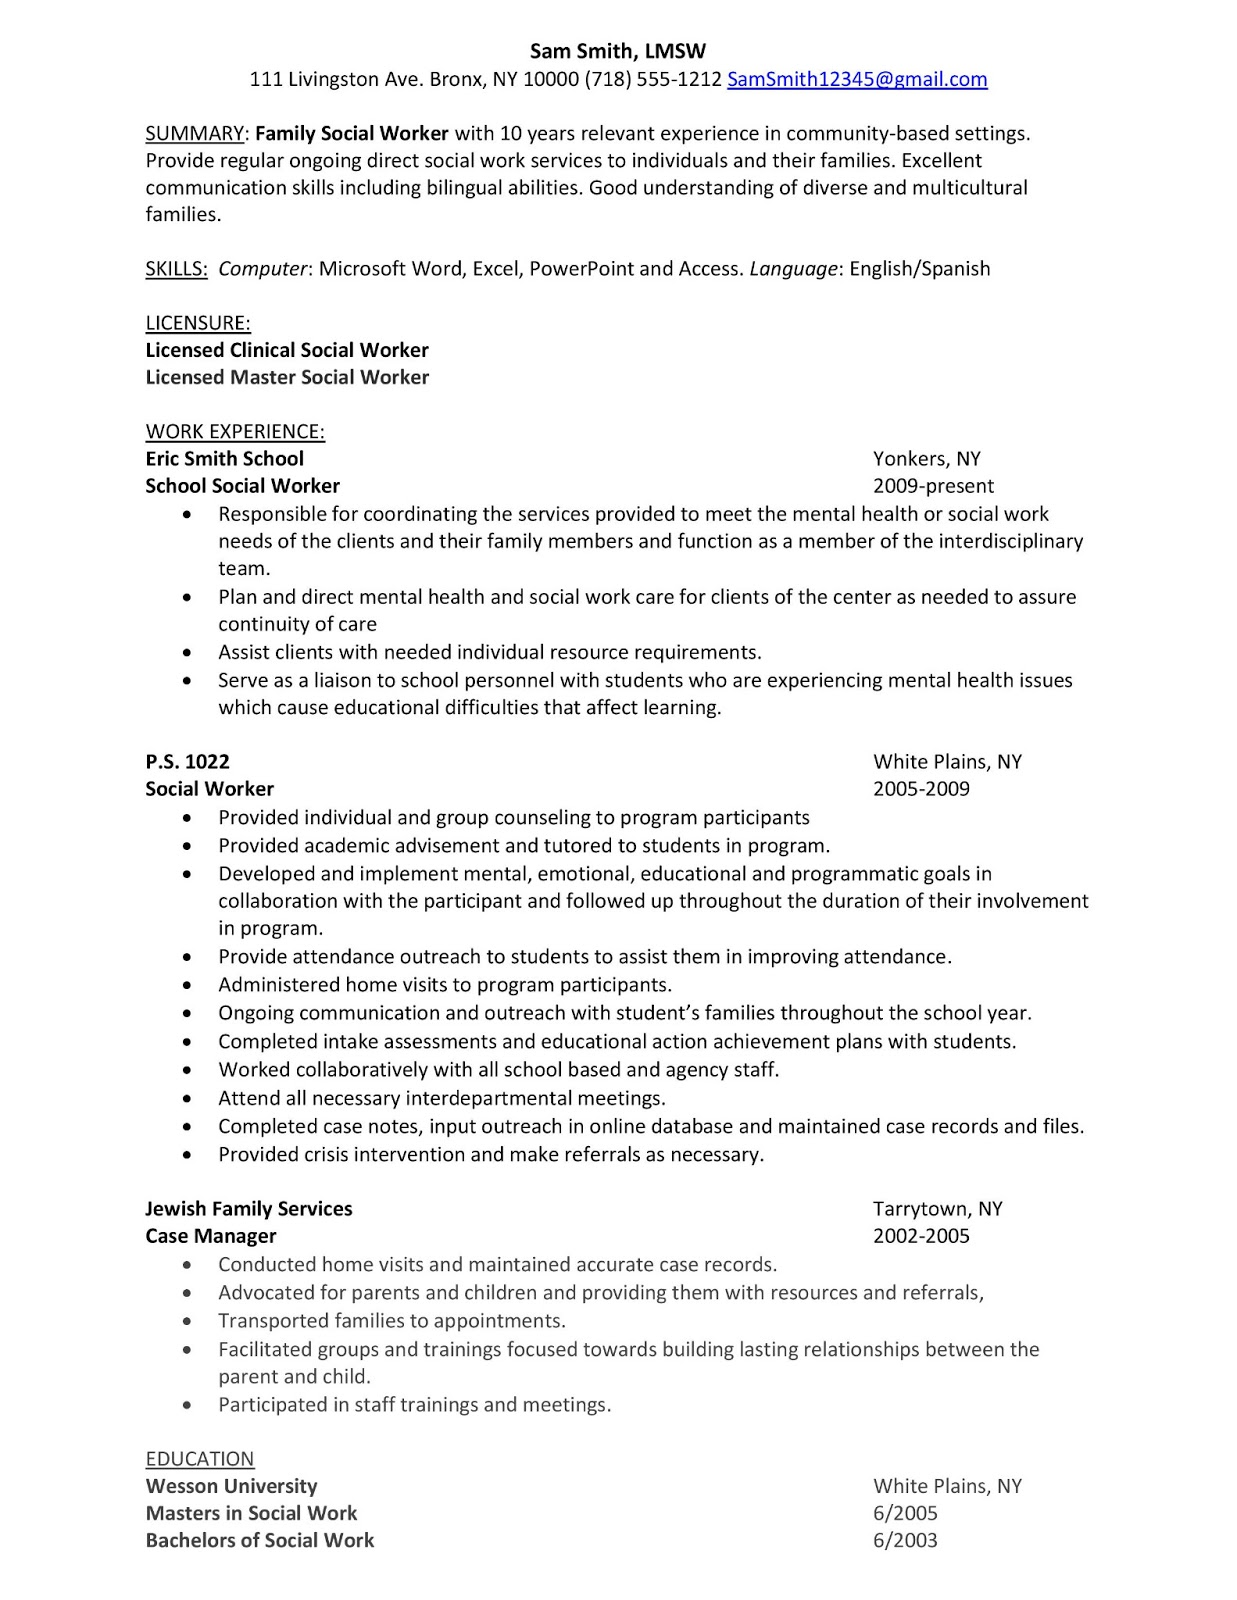 sample resume family social worker. Resume Example. Resume CV Cover Letter